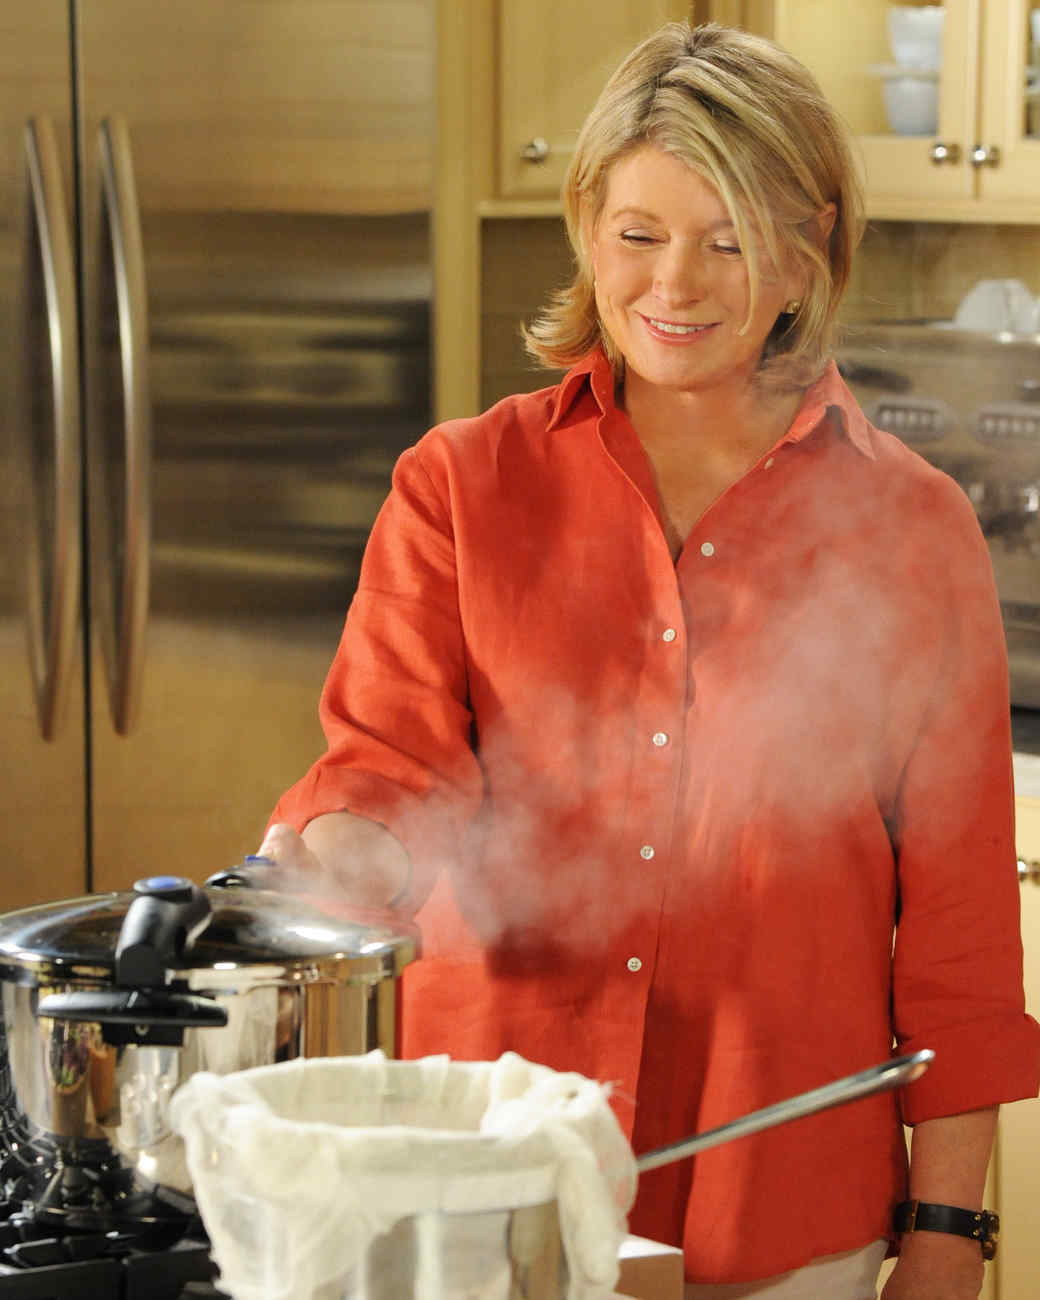 martha-with-pressure-cooker-mscs104.jpg